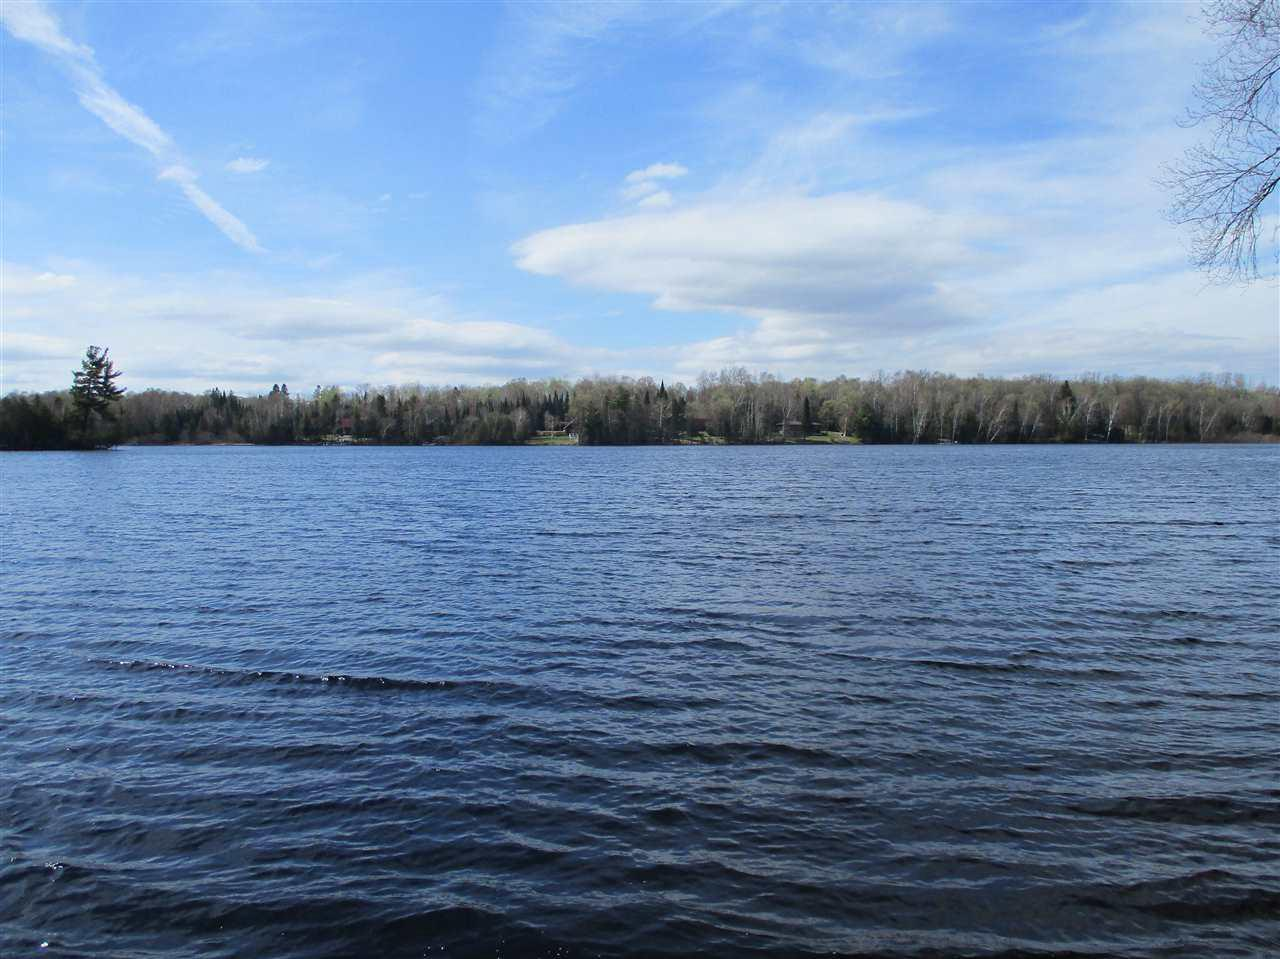 This homes resides on a secluded 3 acre lot with a stunning western view of North Turtle Lake and 300' of frontage.  Sandy beach for great swimming, level walkout to the water and privacy is what this property boasts. North Turtle Lake is 359 acres, 58' deep and all sand and gravel. Water ski from 9:00 AM to 7:00 PM and fish all day long. The home foundation needs to be replaced or tear down and build your dream home. Call today for a private showing.